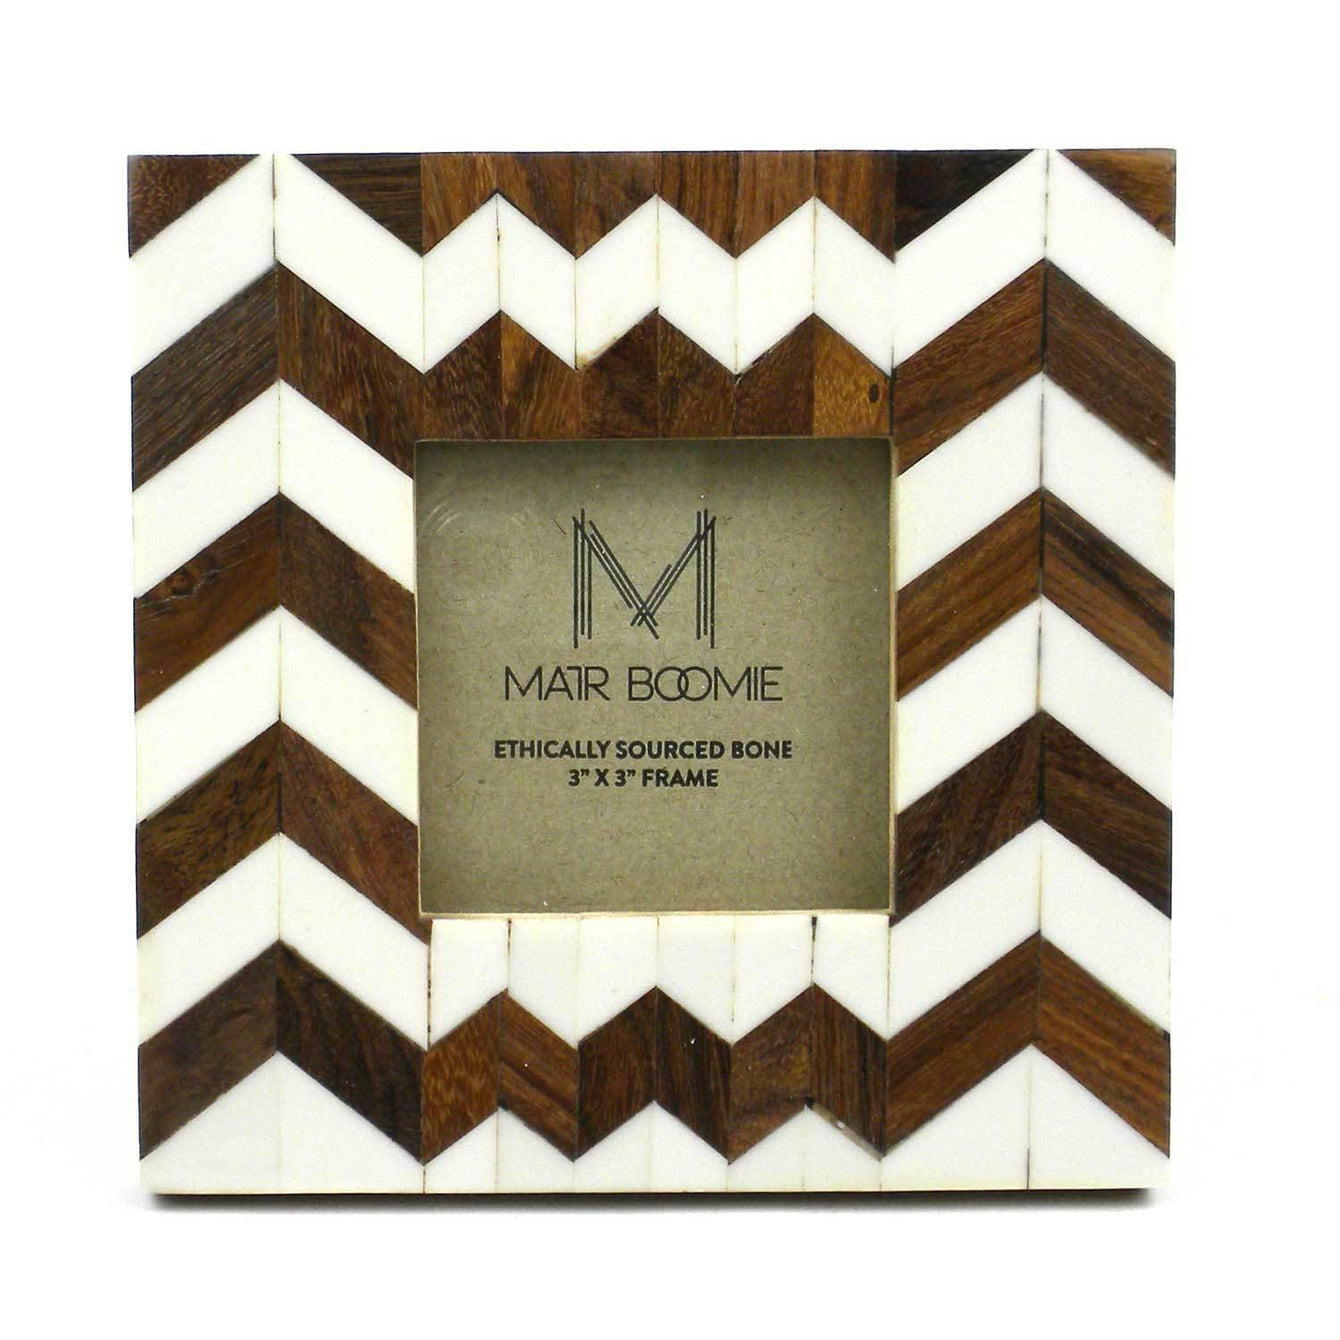 Rudra Bone and Wood Frame for a 3X3 Photo-Home - Decor - Picture Frames-MATR BOOMIE FAIR TRADE-Peccadilly